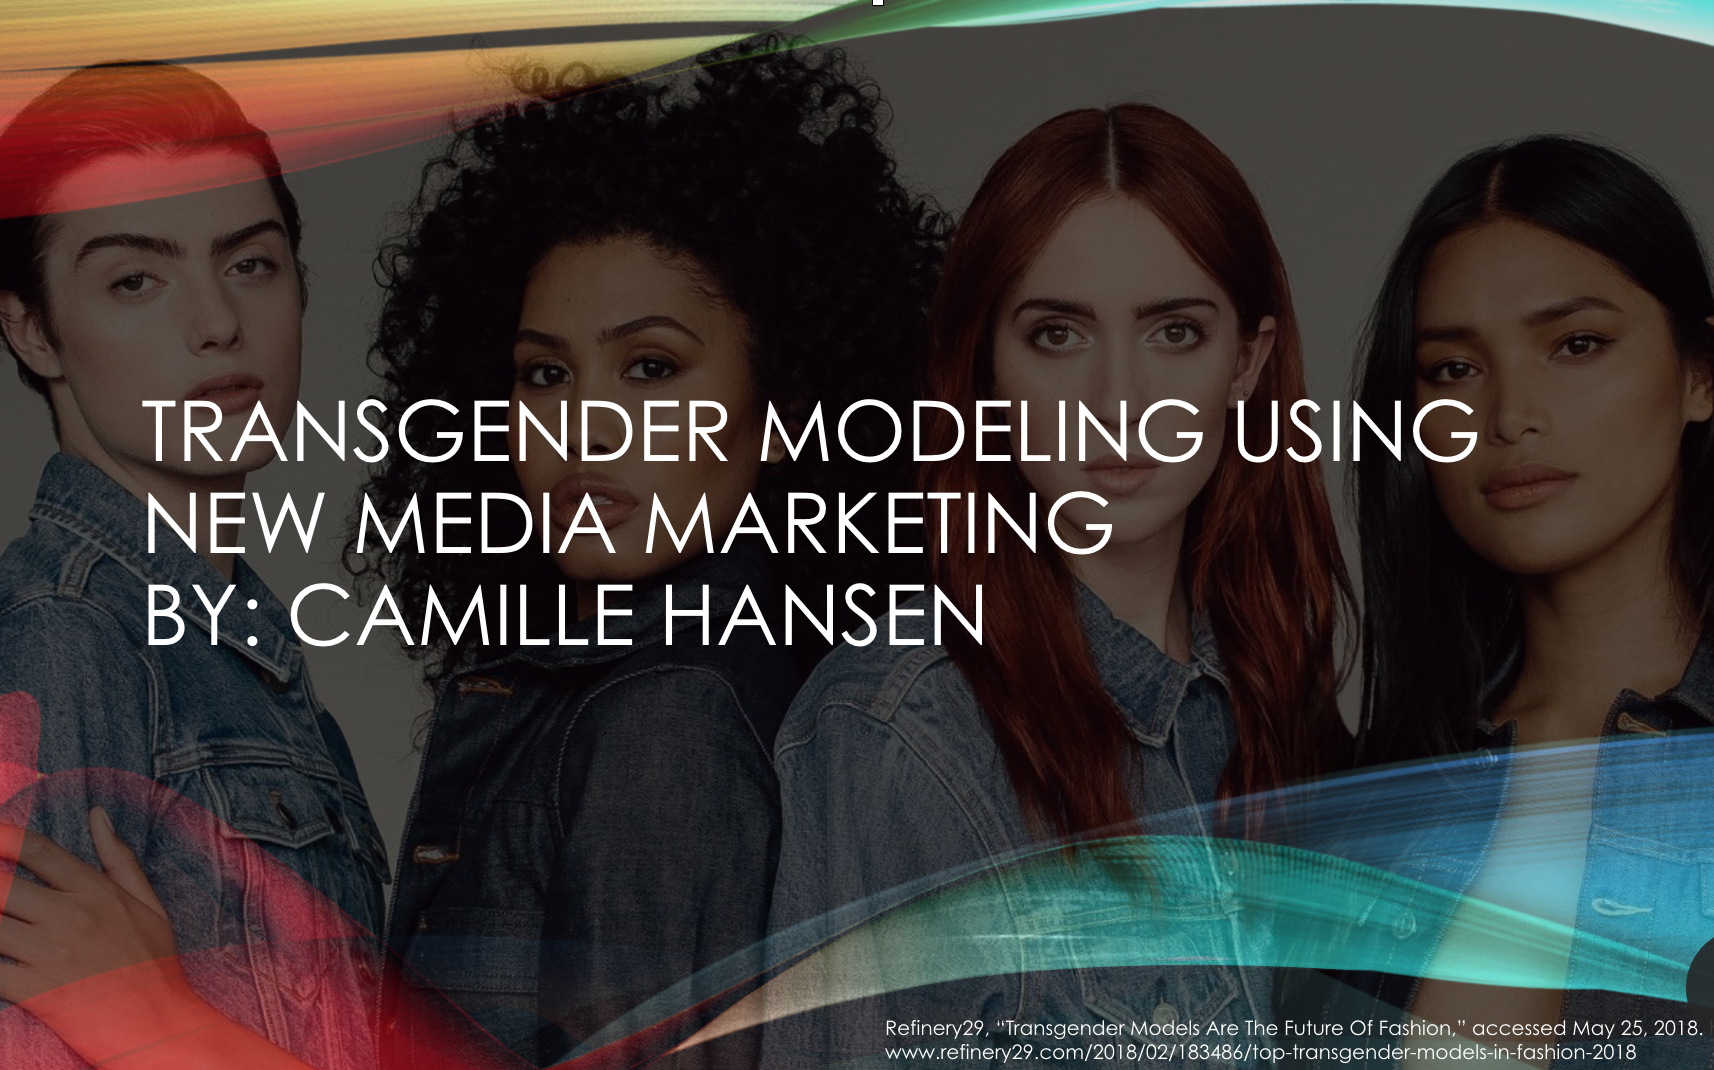 Social Media Marketing for Transgender Fashion Models: Part One: Abstract